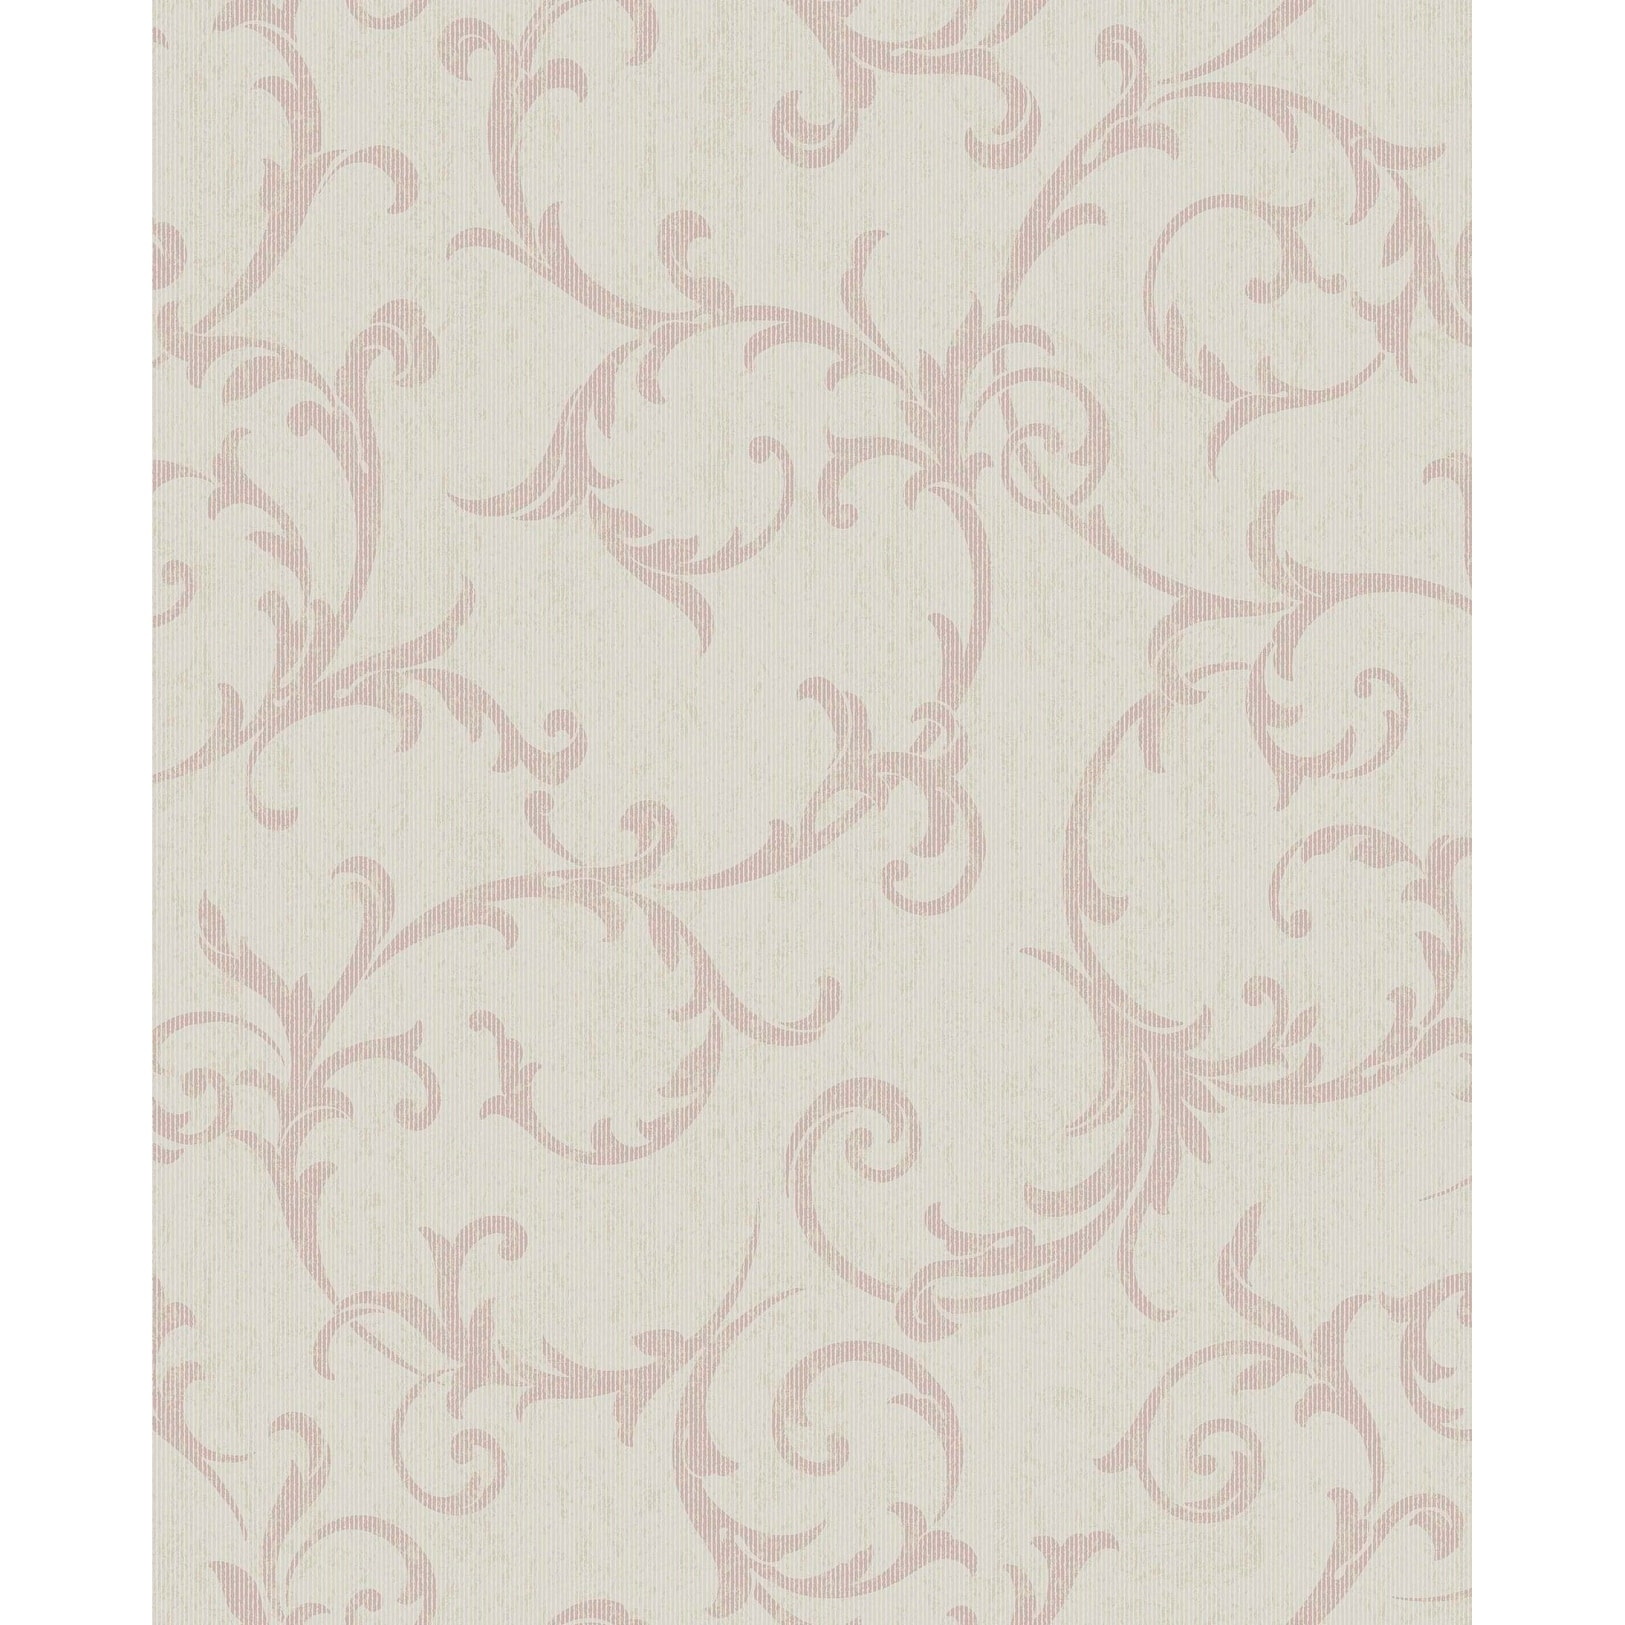 Chesapeake Ccb02134 Lorraine Lily Floral Wallpaper Blue